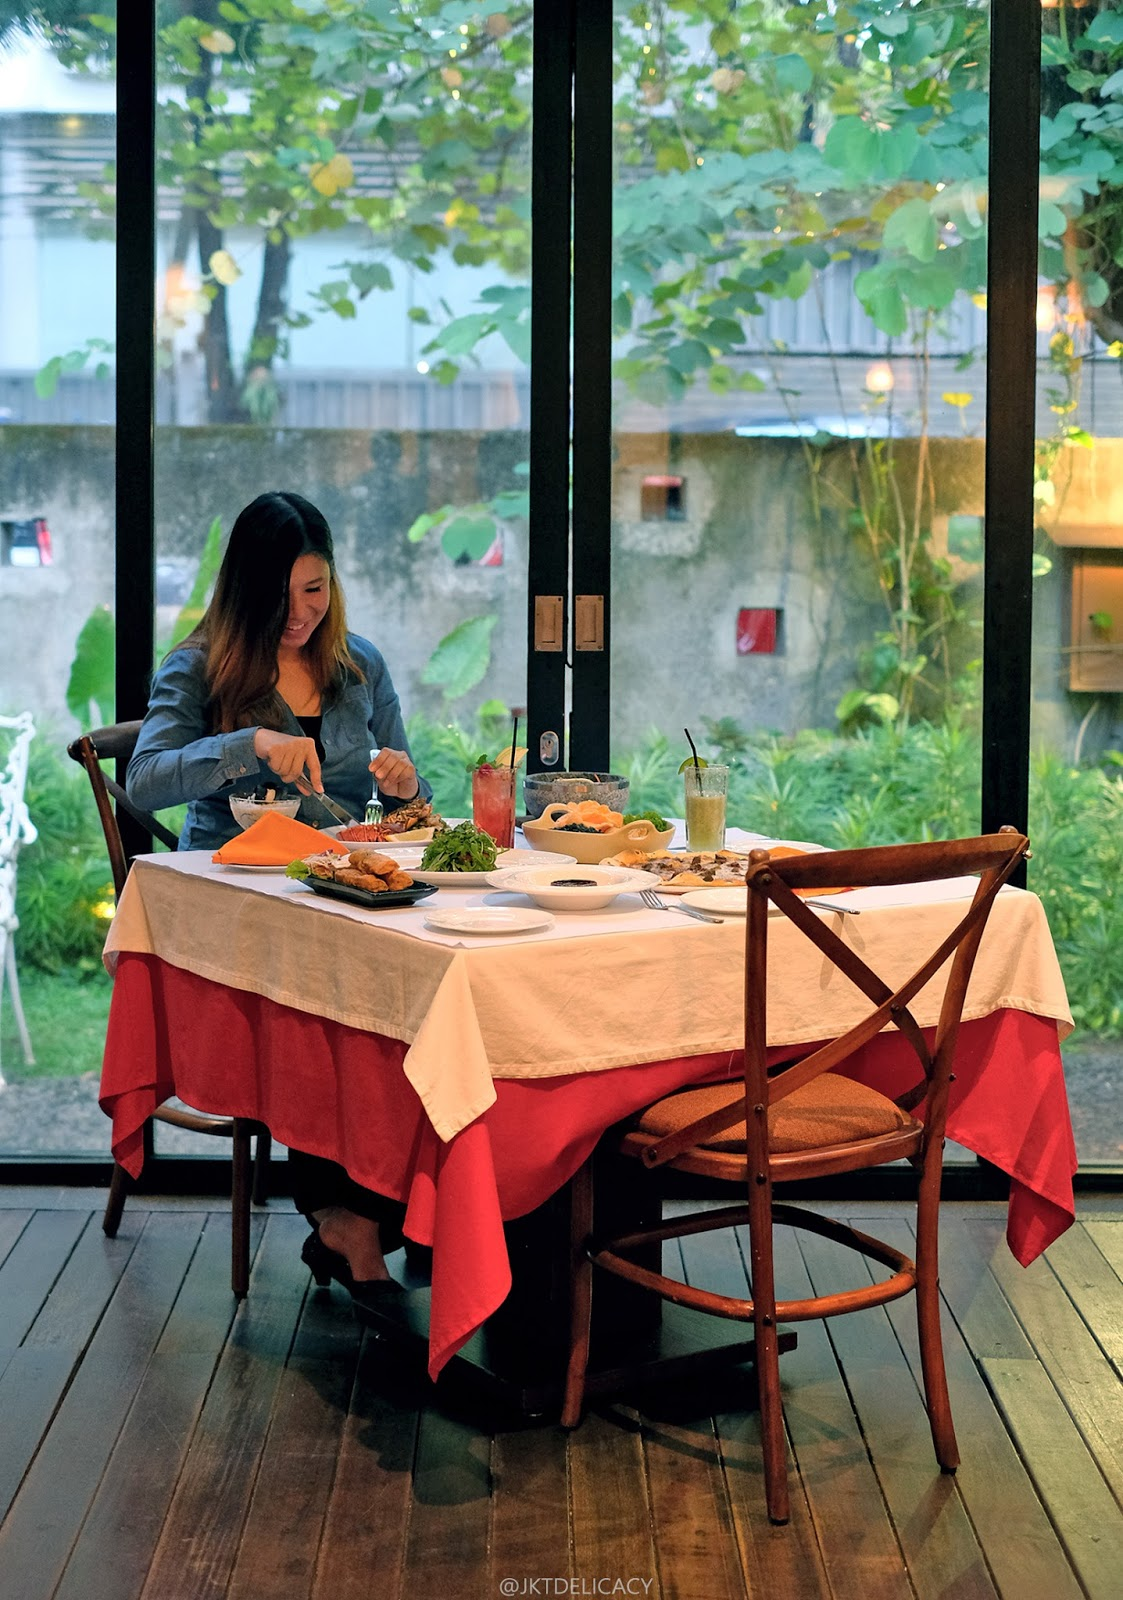 Jktdelicacy Com Romantic Dining At Patio Venue By Plataran